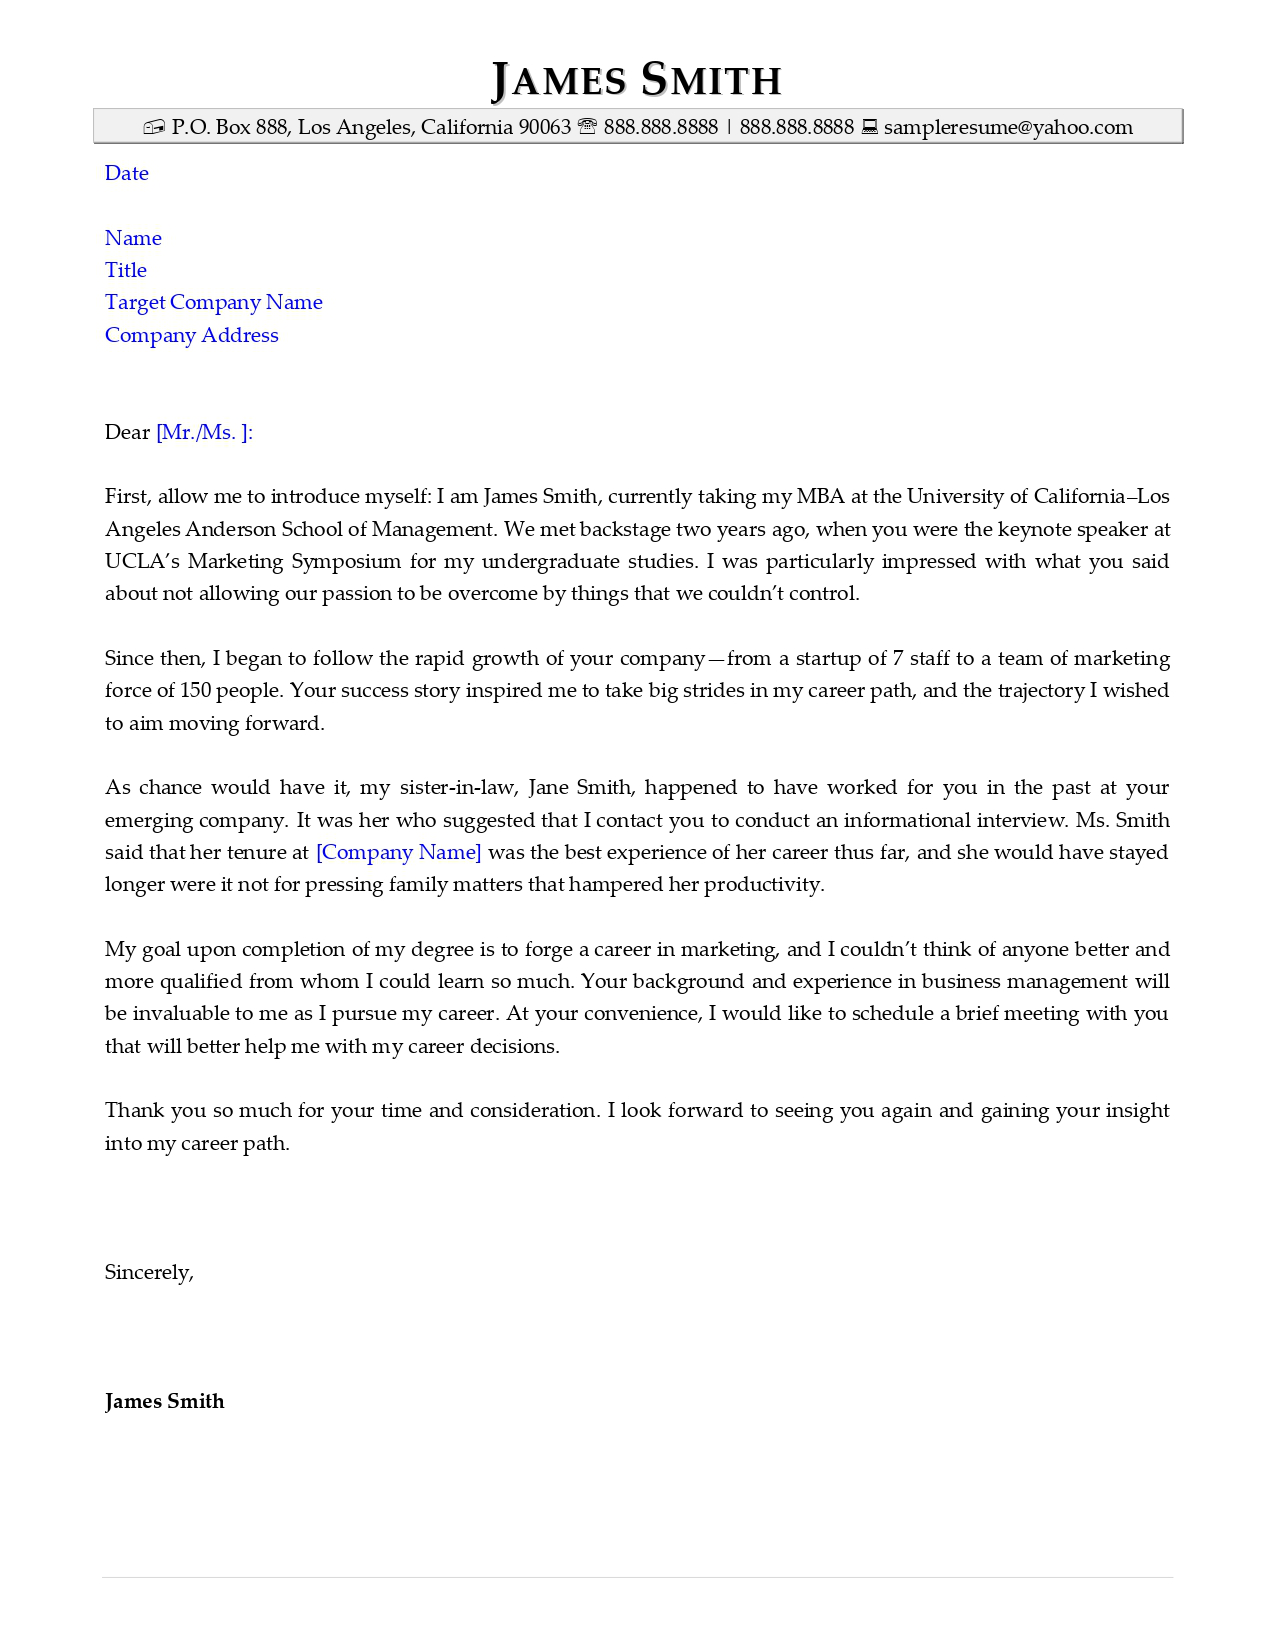 Networking letter sample from Resume Valley